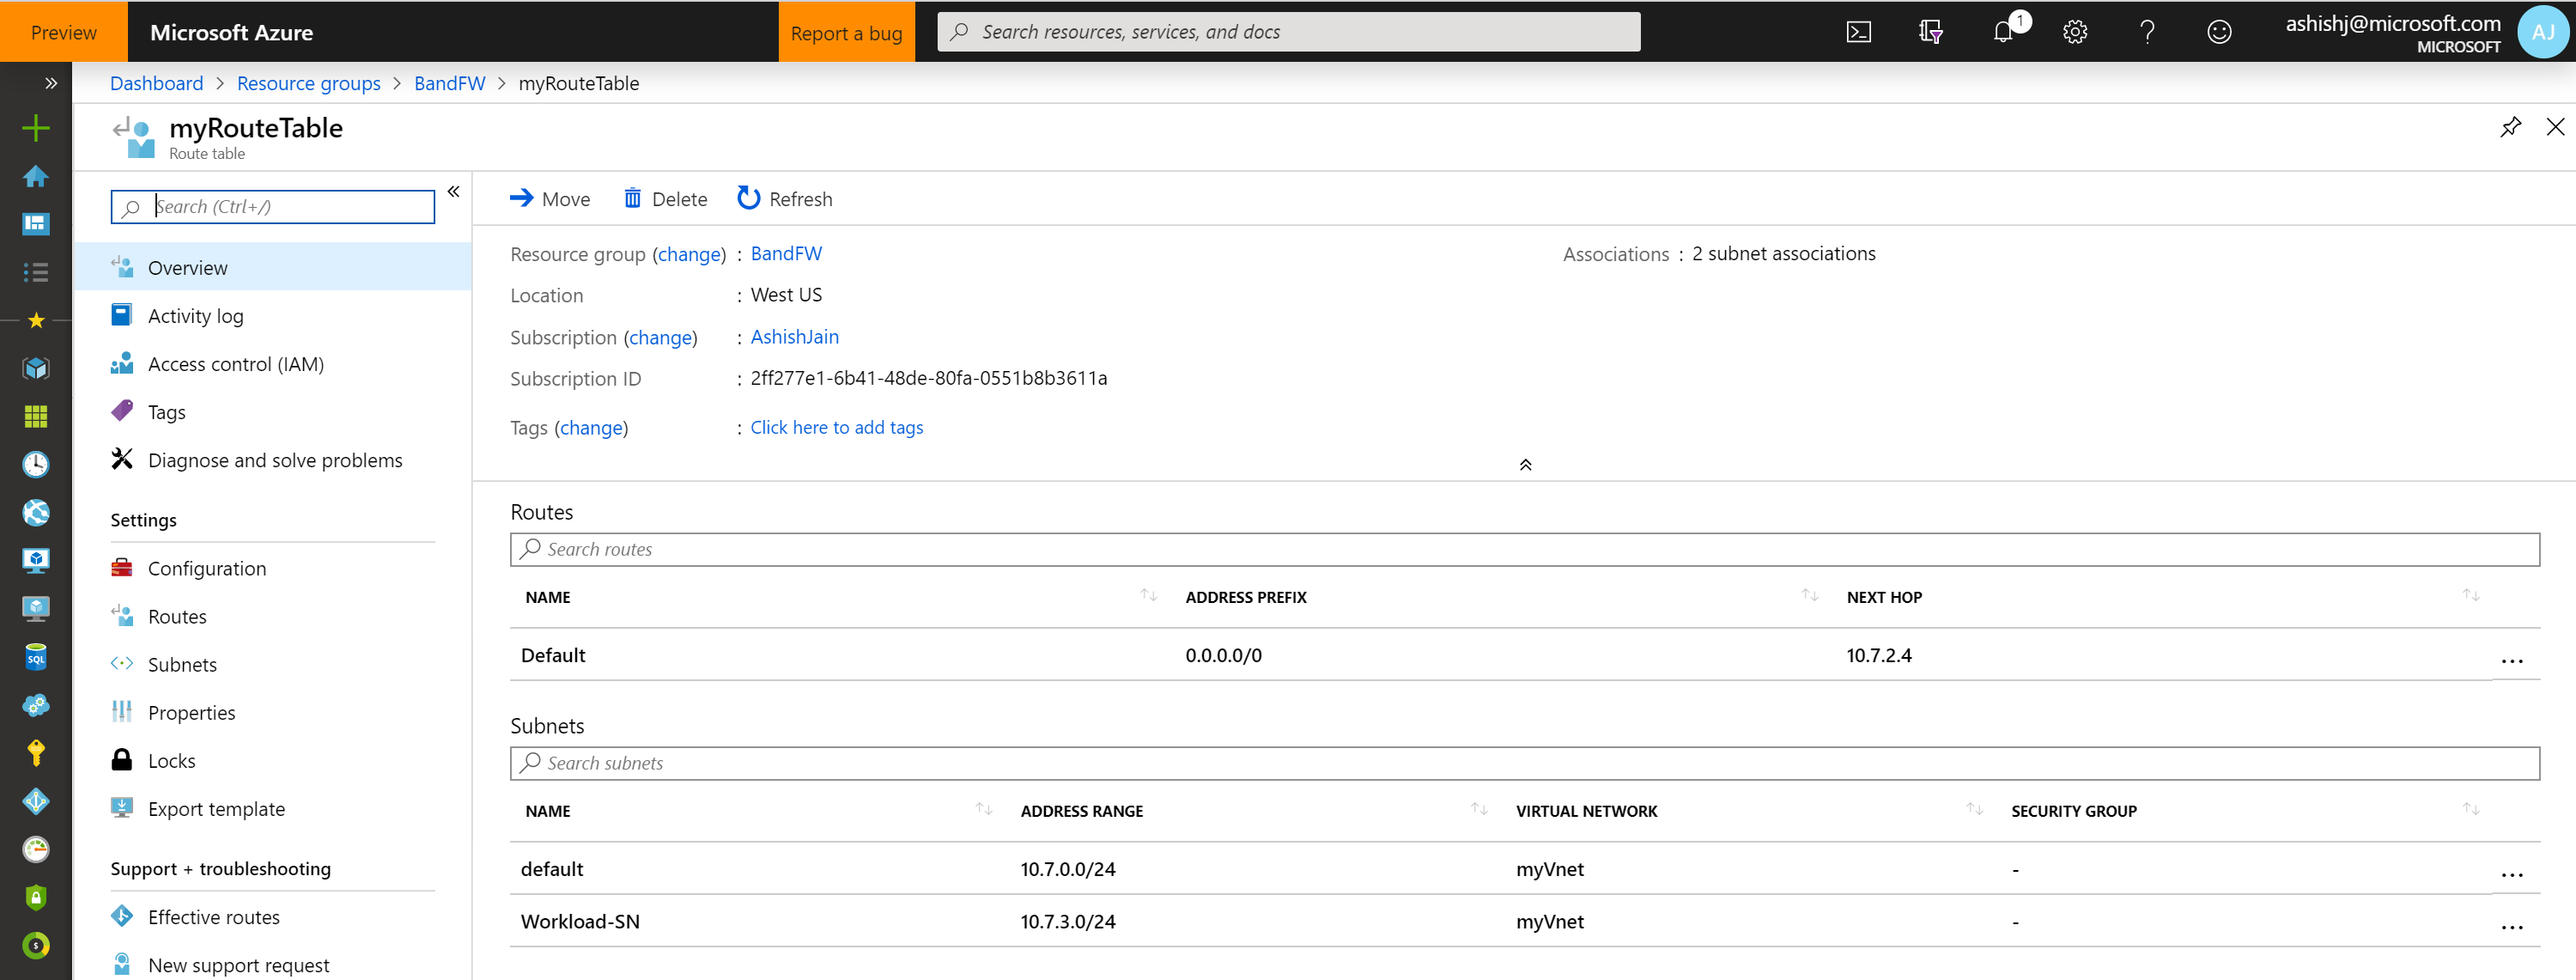 myRoute table in Microsoft Azure